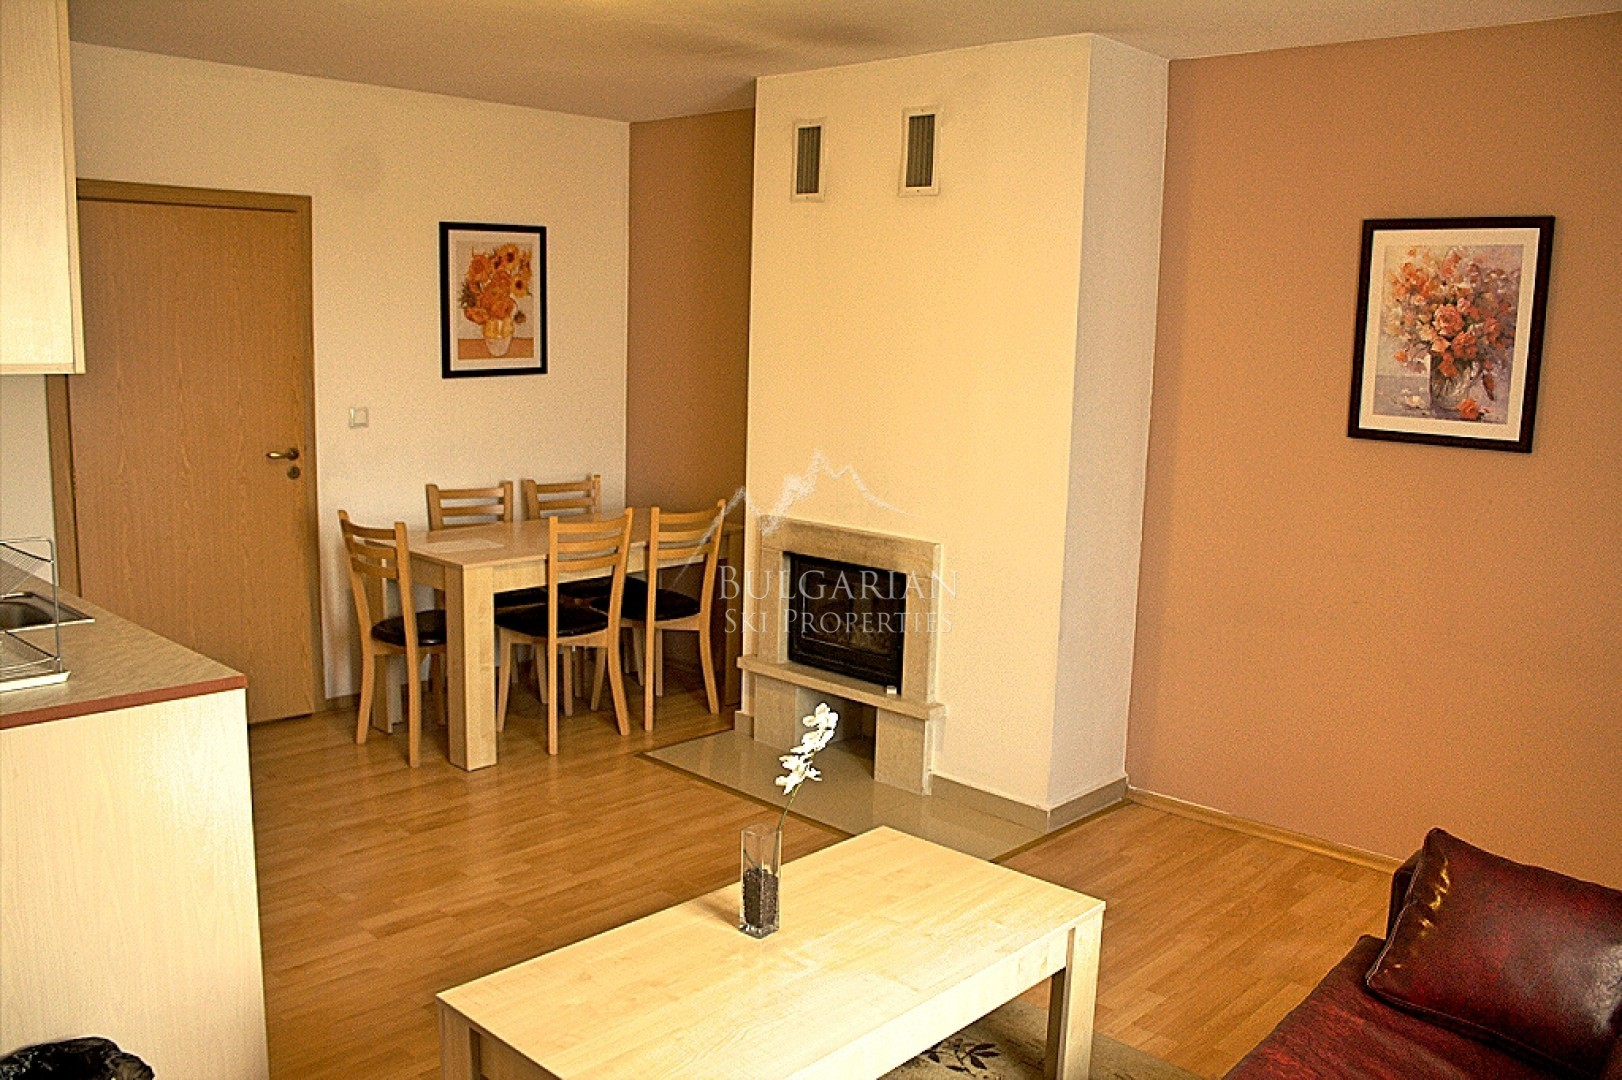 Pirin River Ski & Spa, Bansko: two-bedroom apartment with fireplace for sale